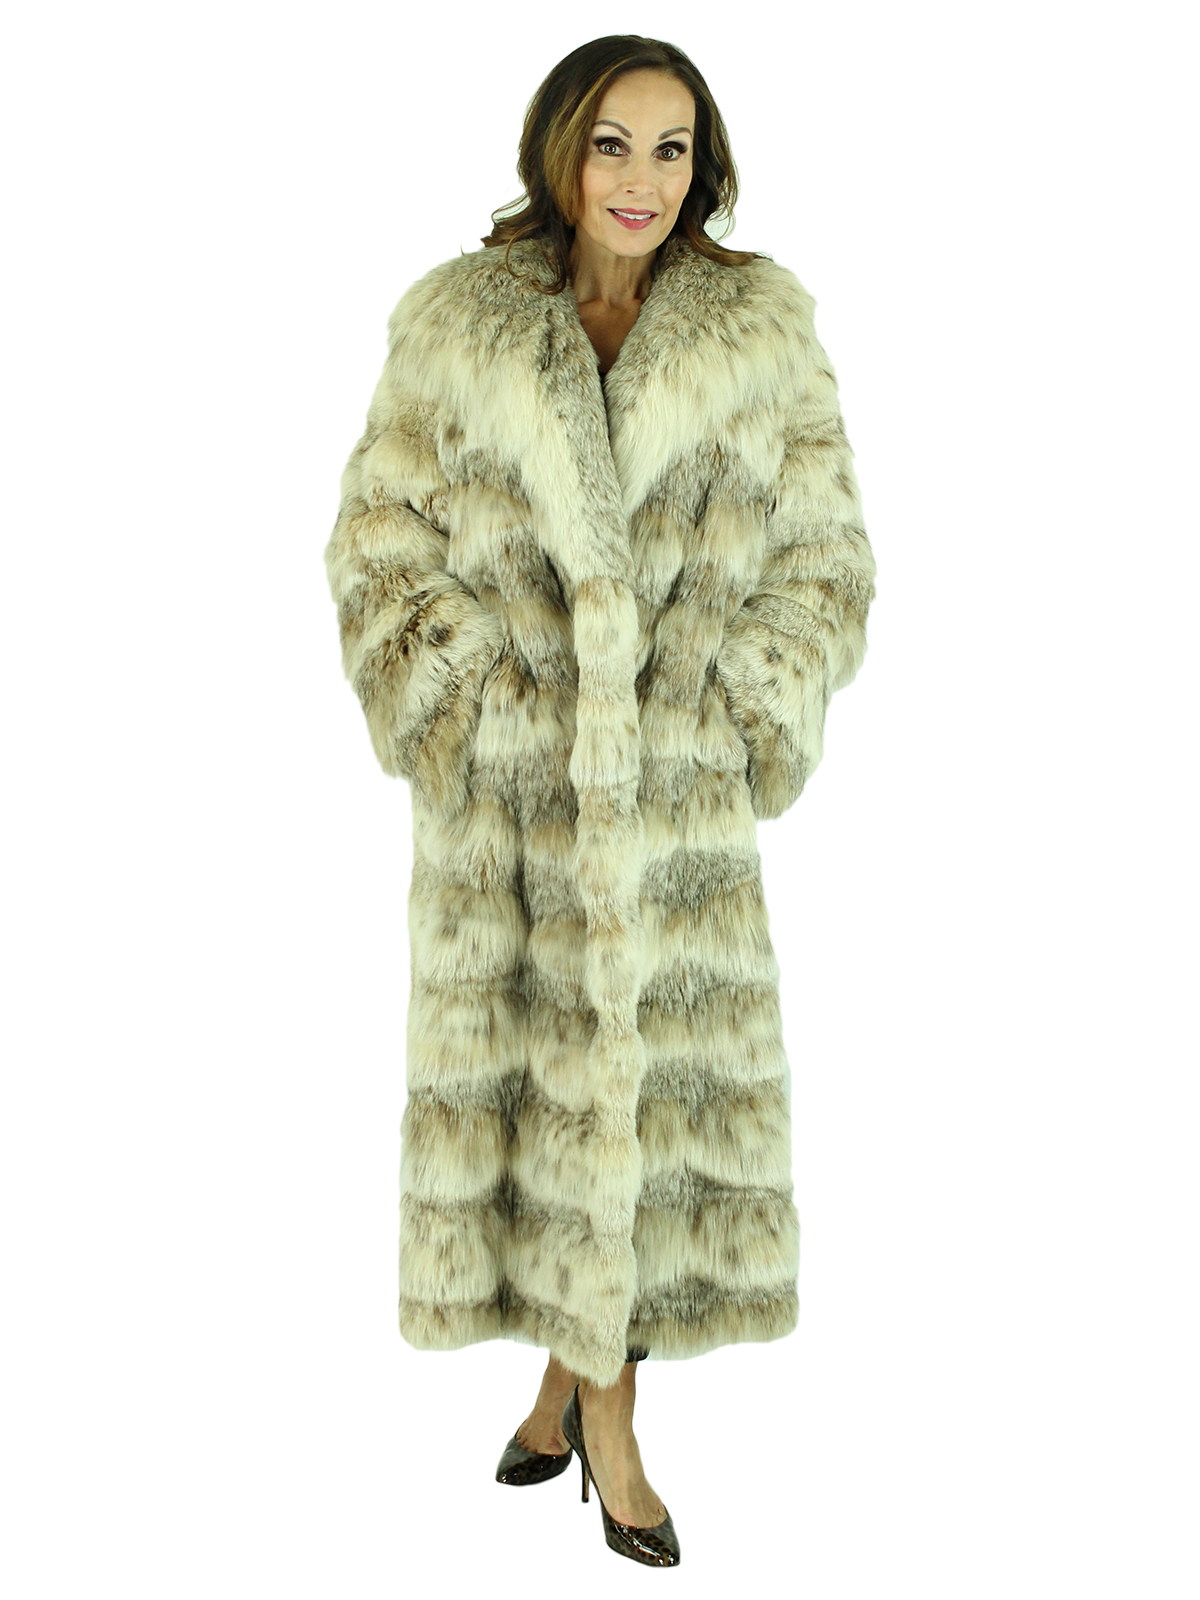 Woman's Natural Canadian Lynx Fur Coat with Horizontal Cut Style